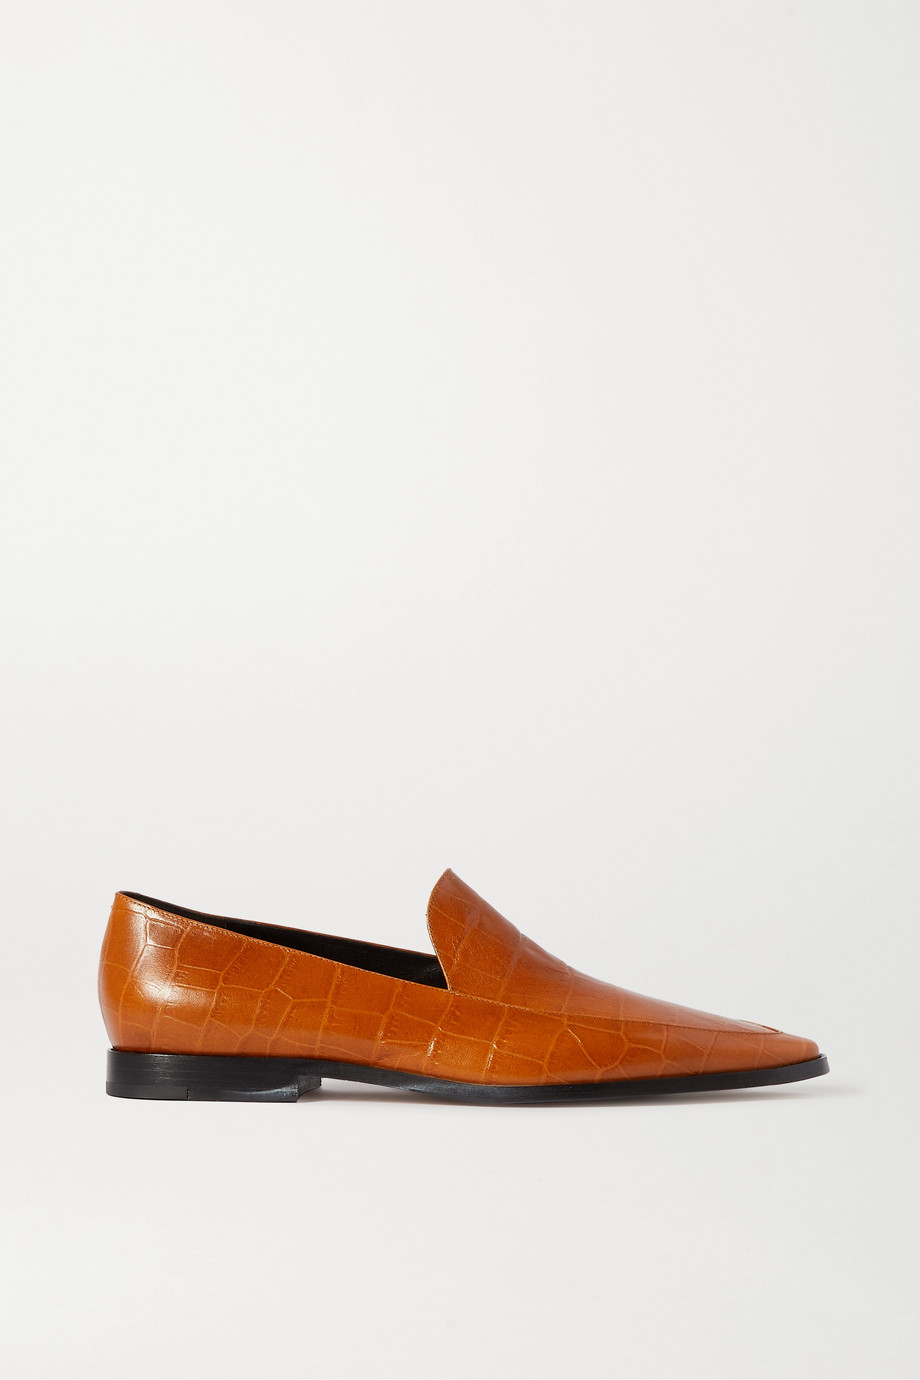 Dries Van Noten Croc-effect kangaroo loafers